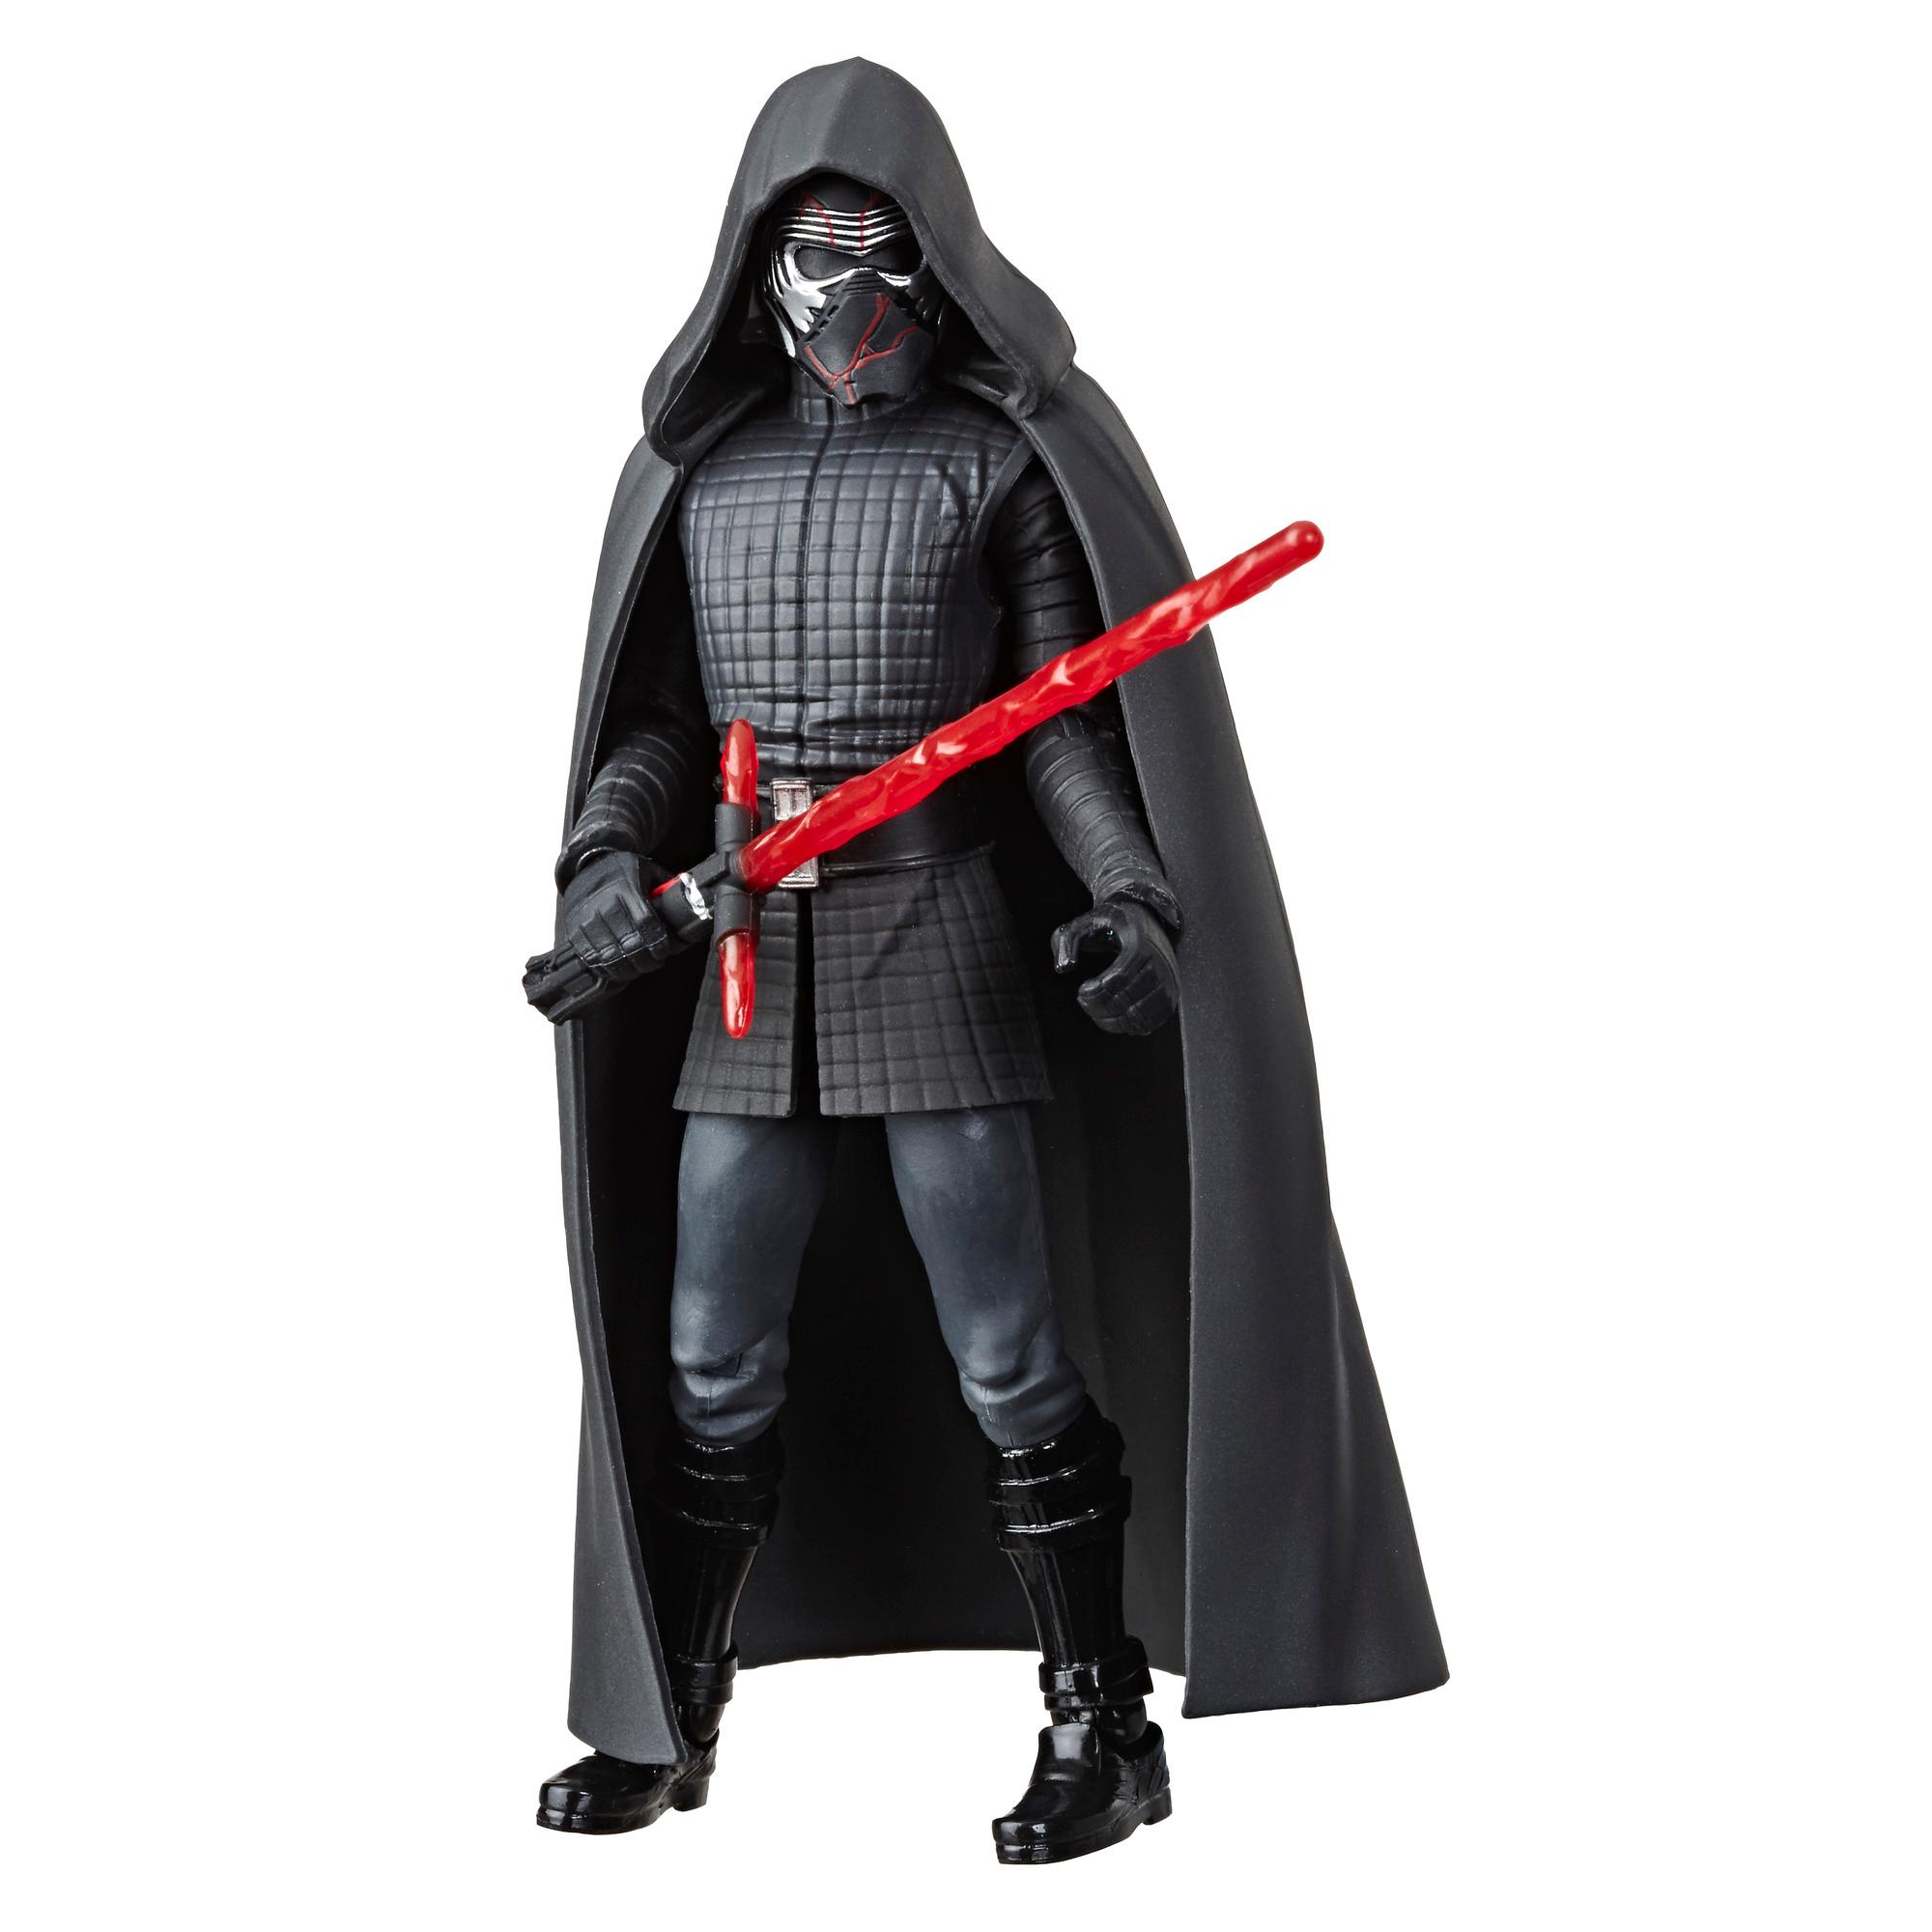 Star Wars Galaxy of Adventures Kylo Ren Action-Figur